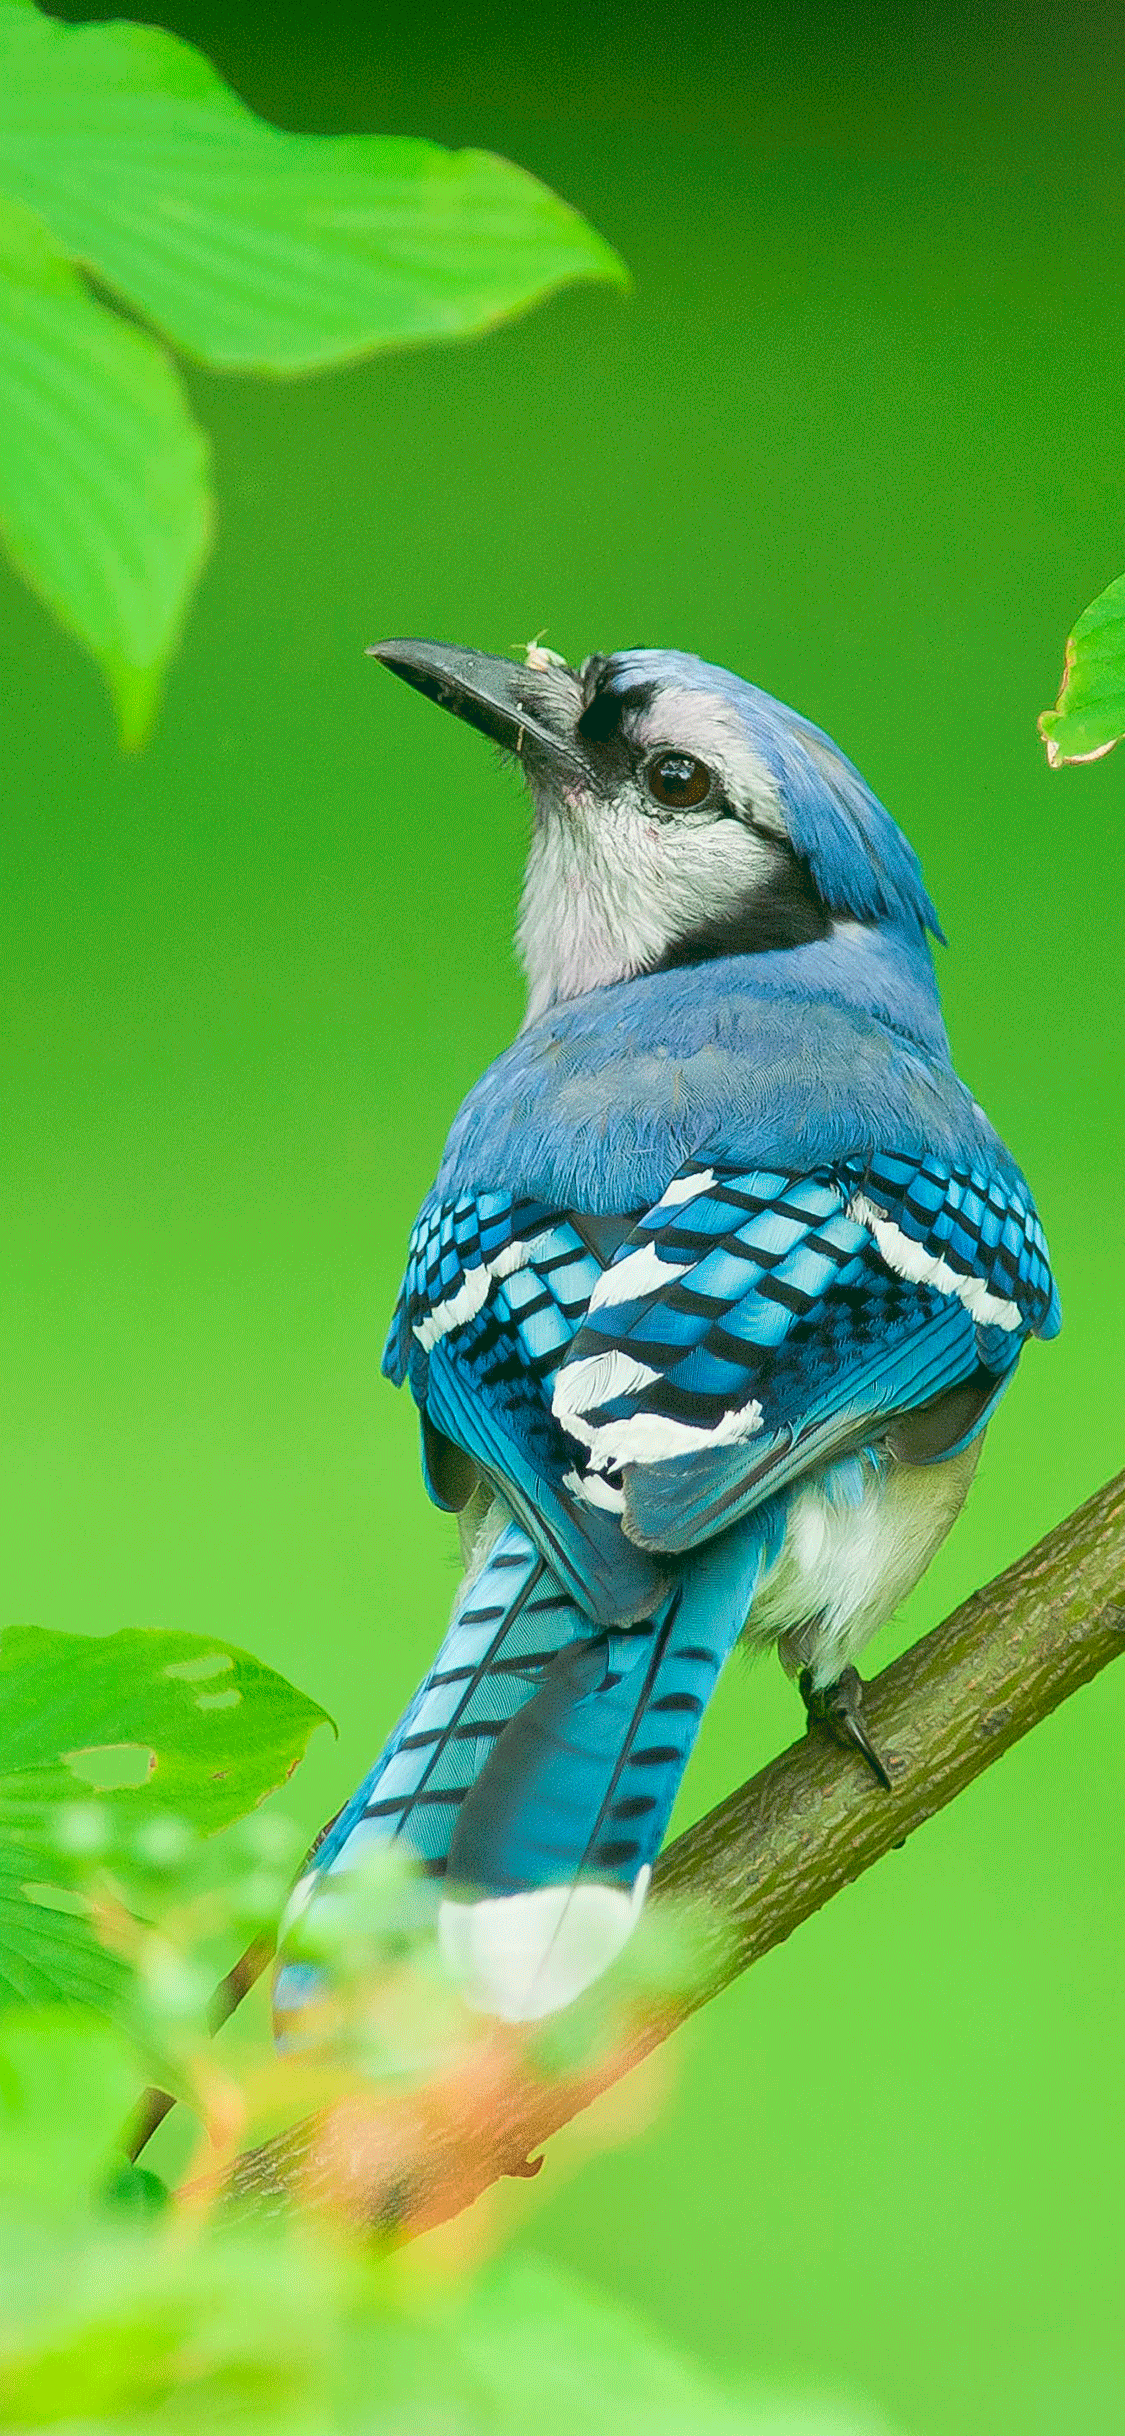 iPhone wallpaper bird blue jay Fonds d'écran iPhone du 02/07/2018